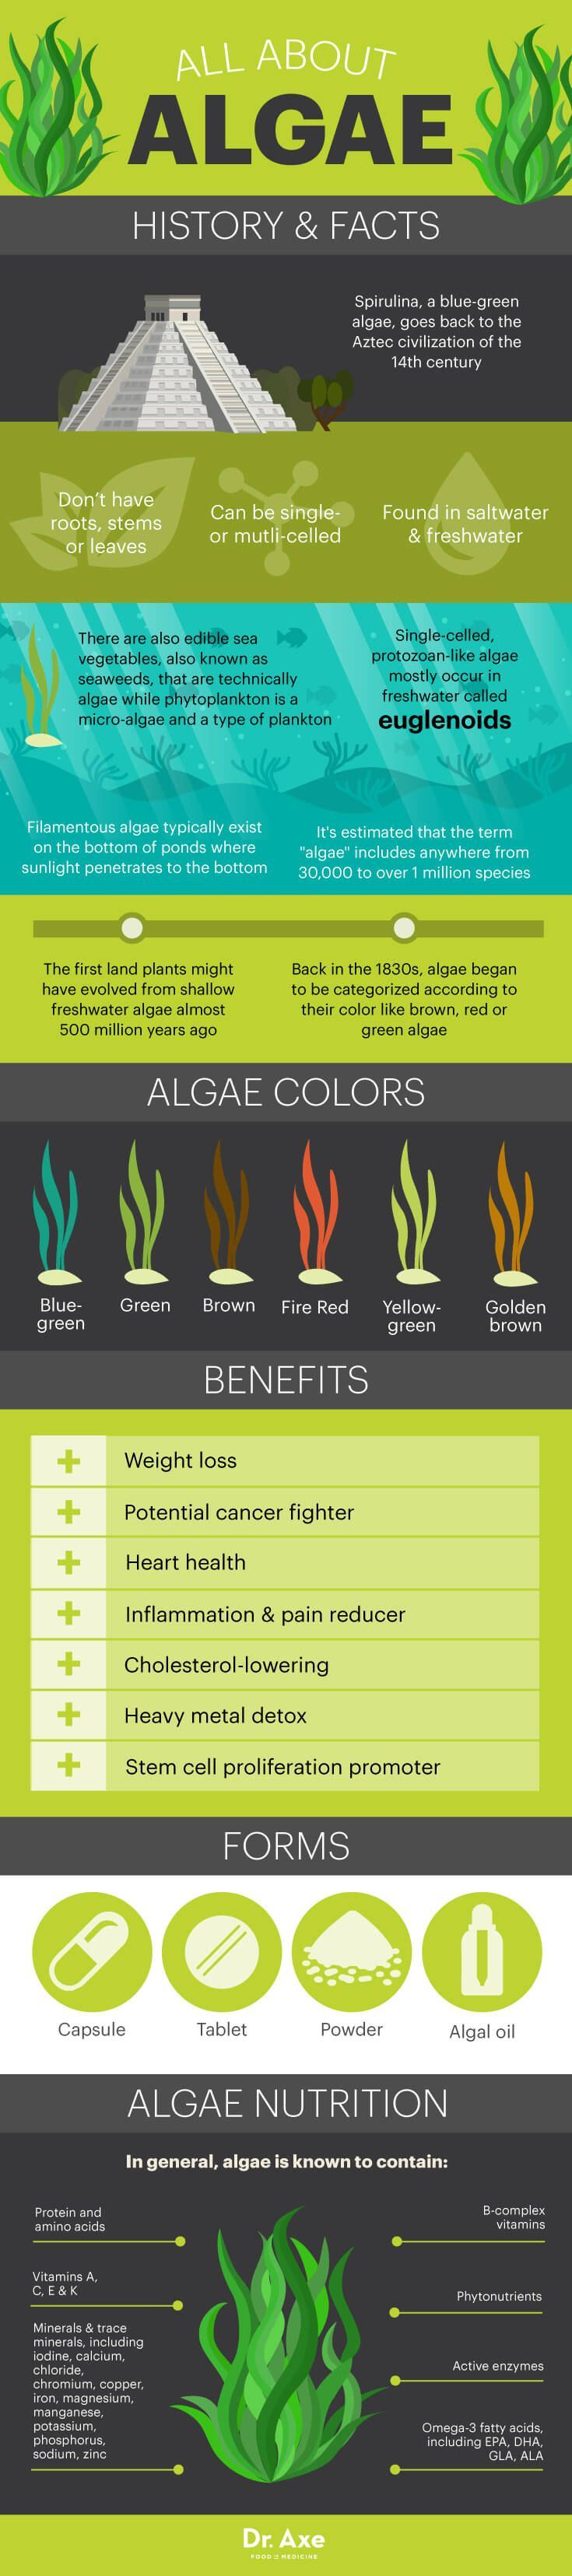 Top 7 Algae Benefits that May Surprise You - Dr. Axe